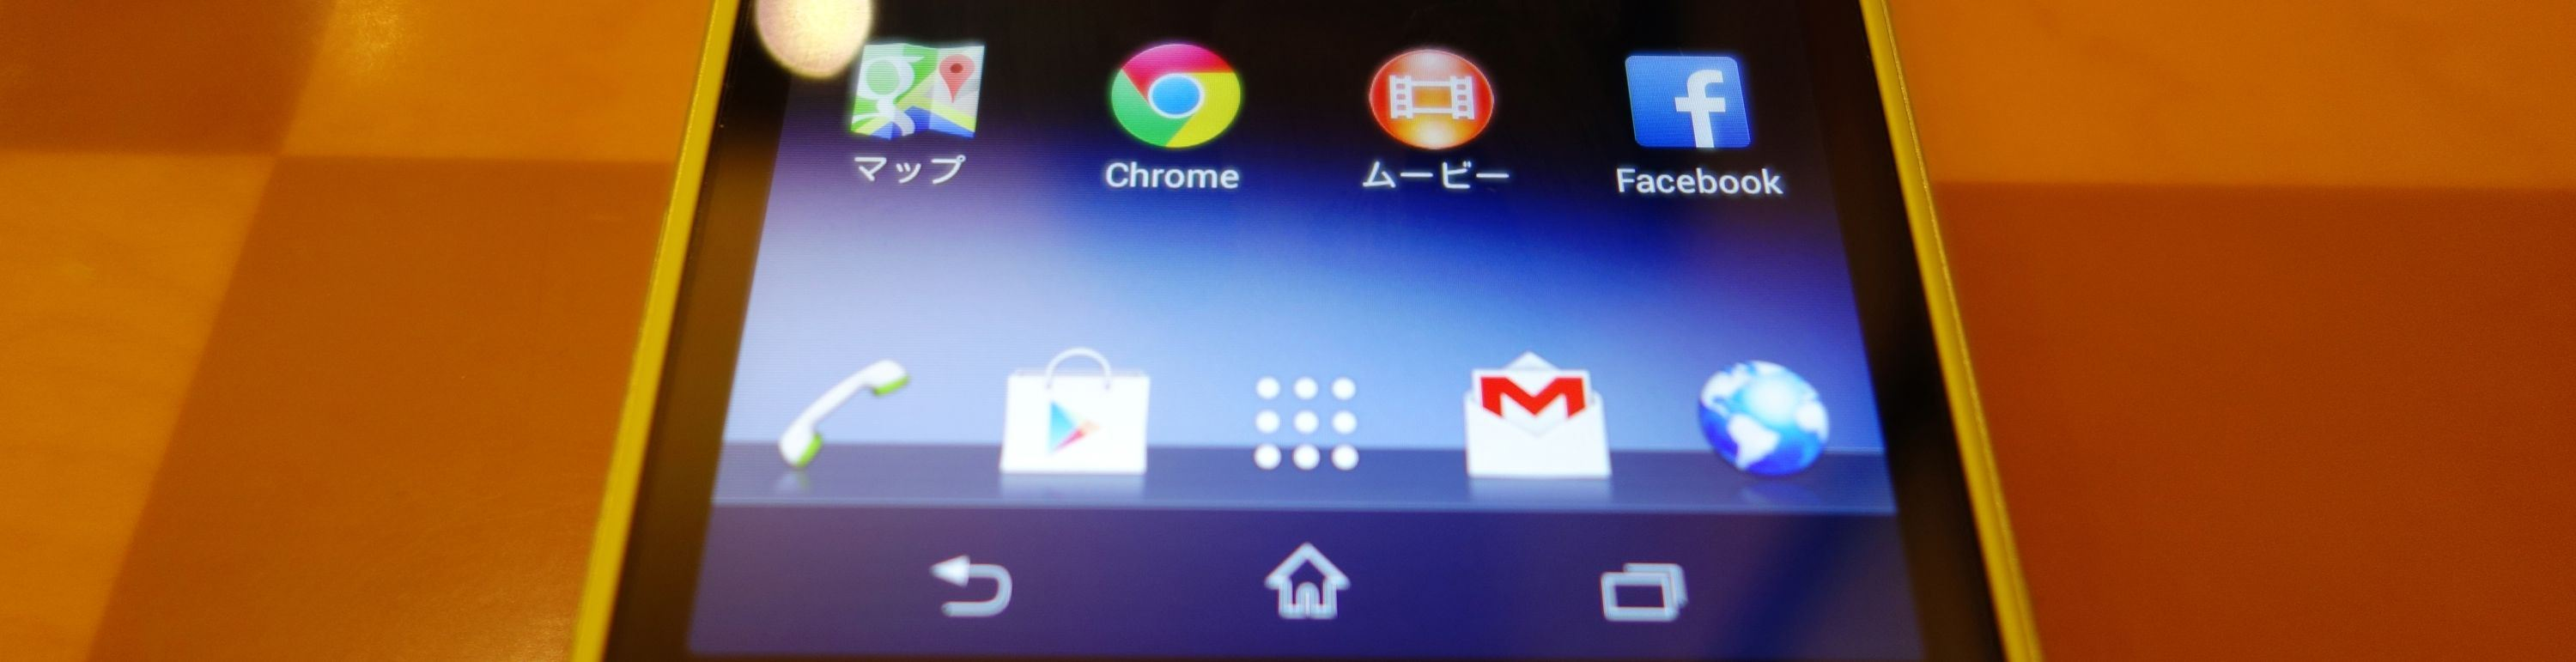 Xperia-Z1-f-display-lottery_5